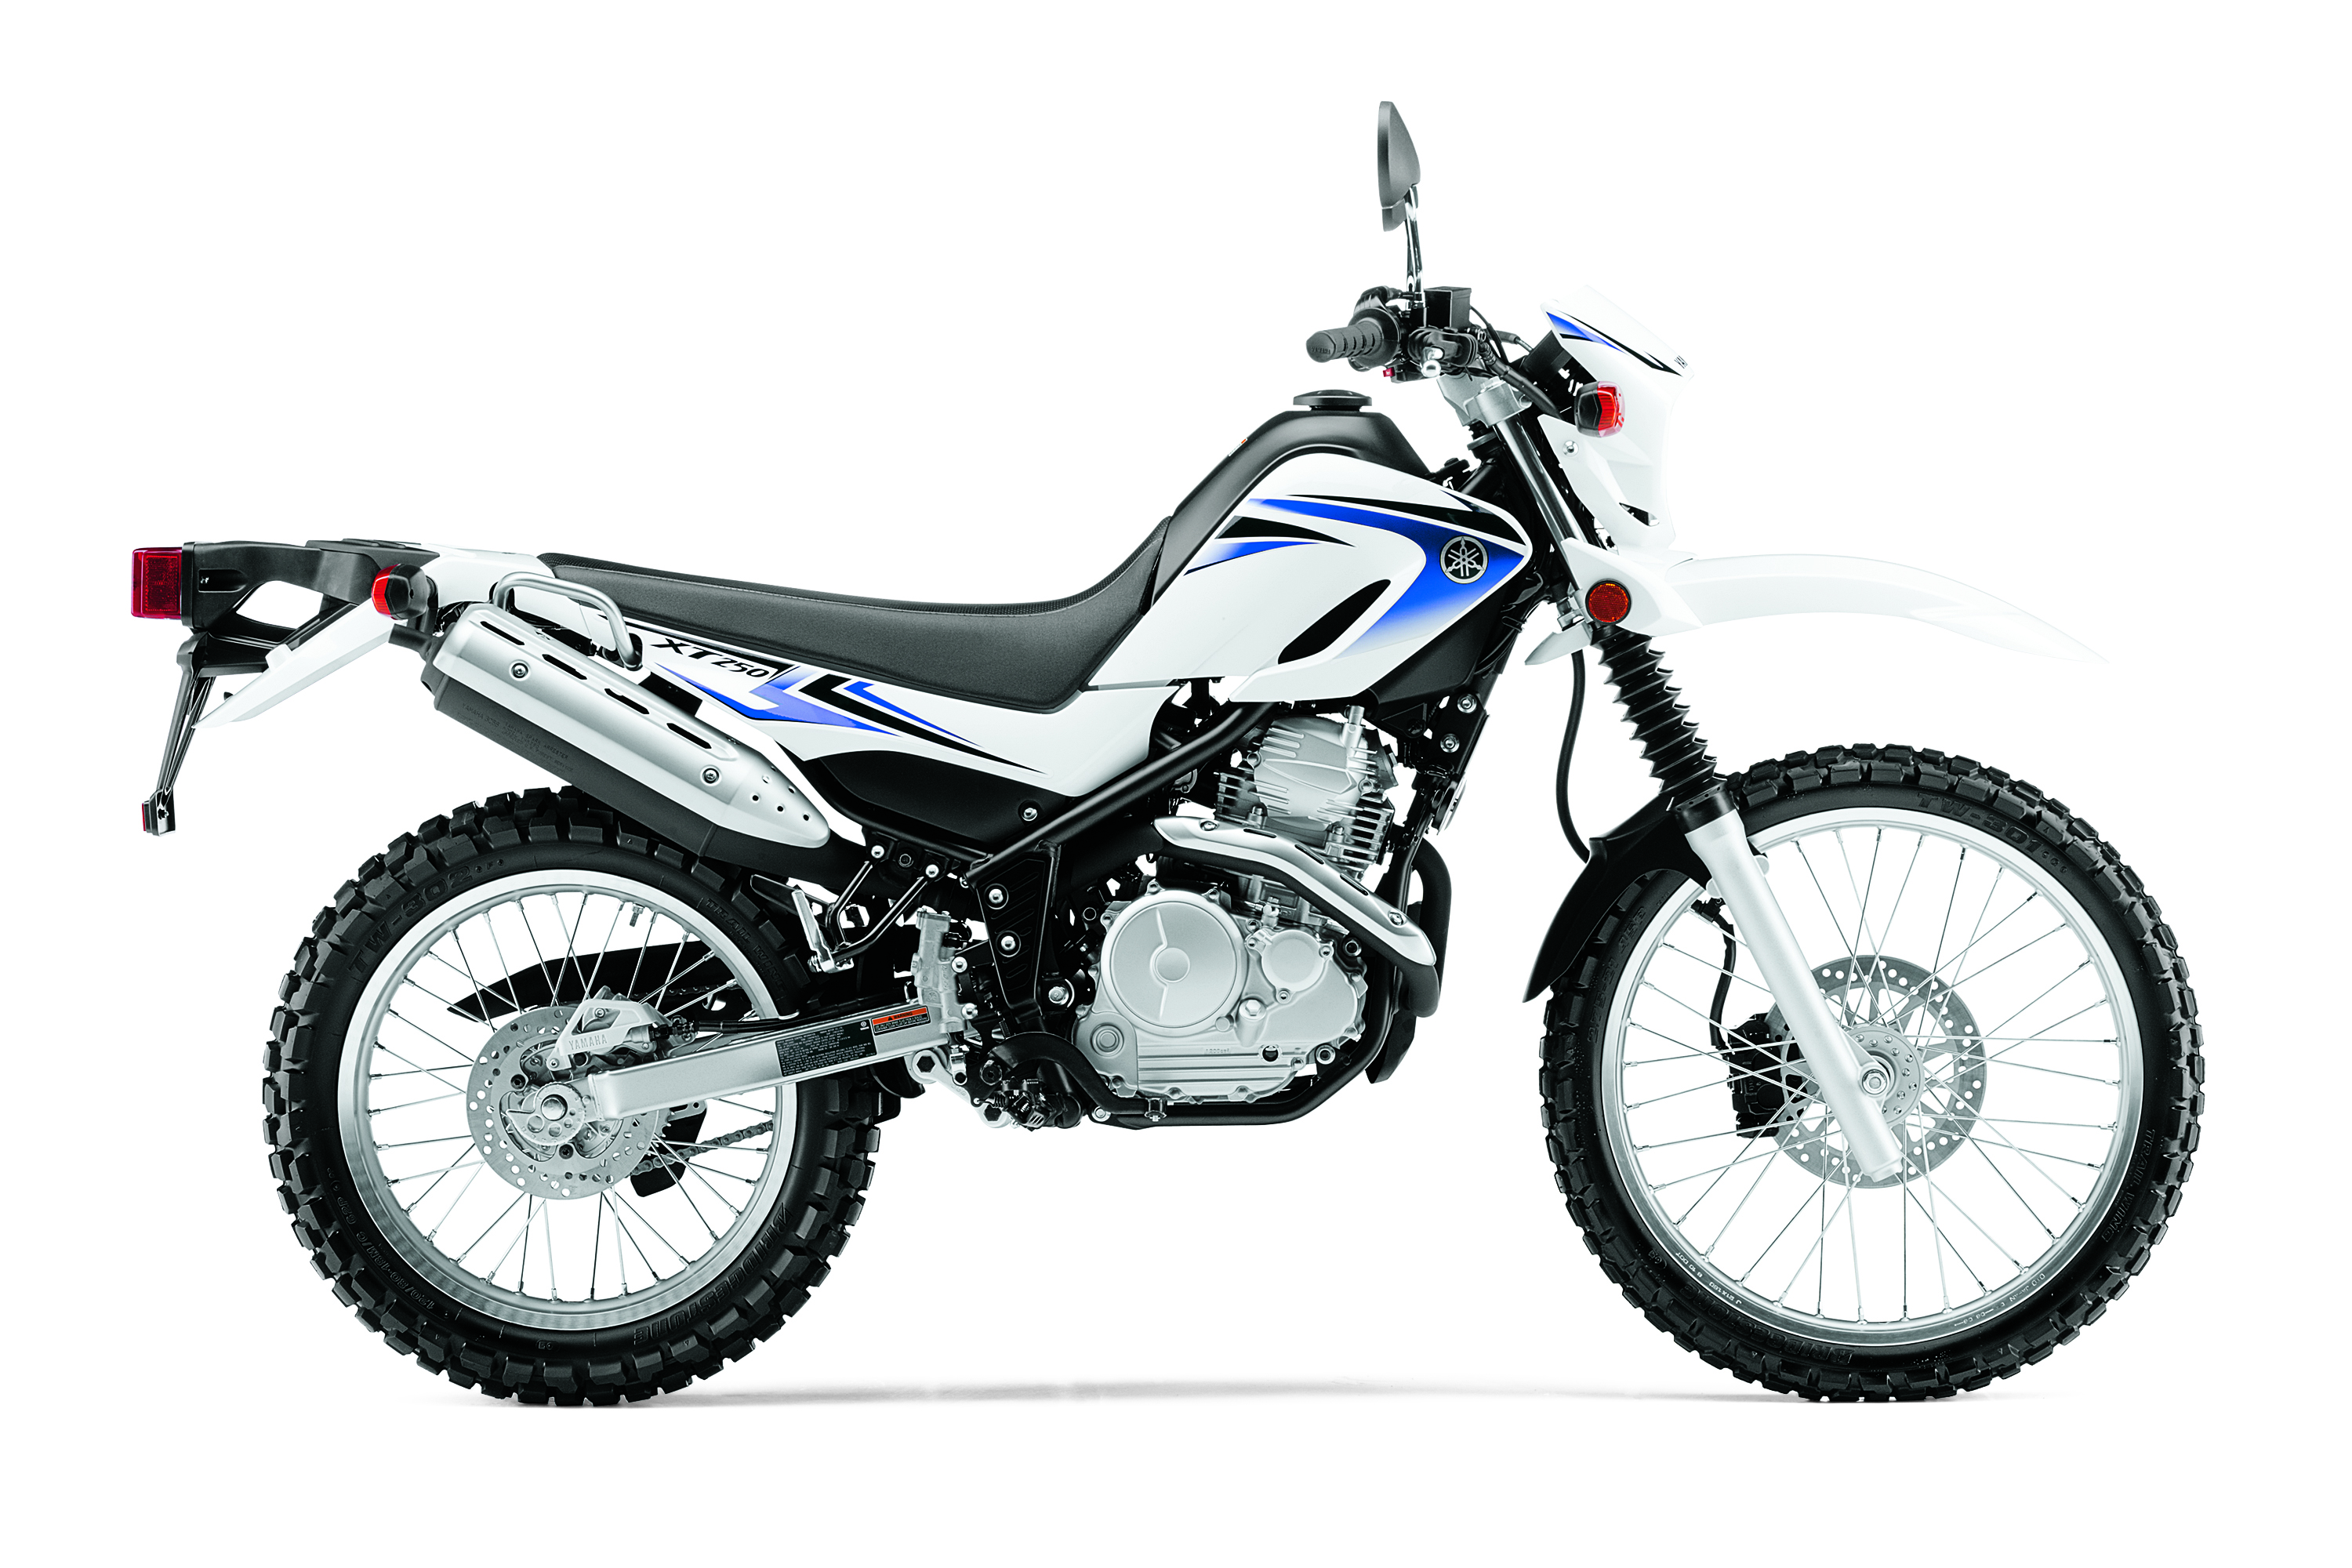 2013 Yamaha XT 250: pics, specs and information